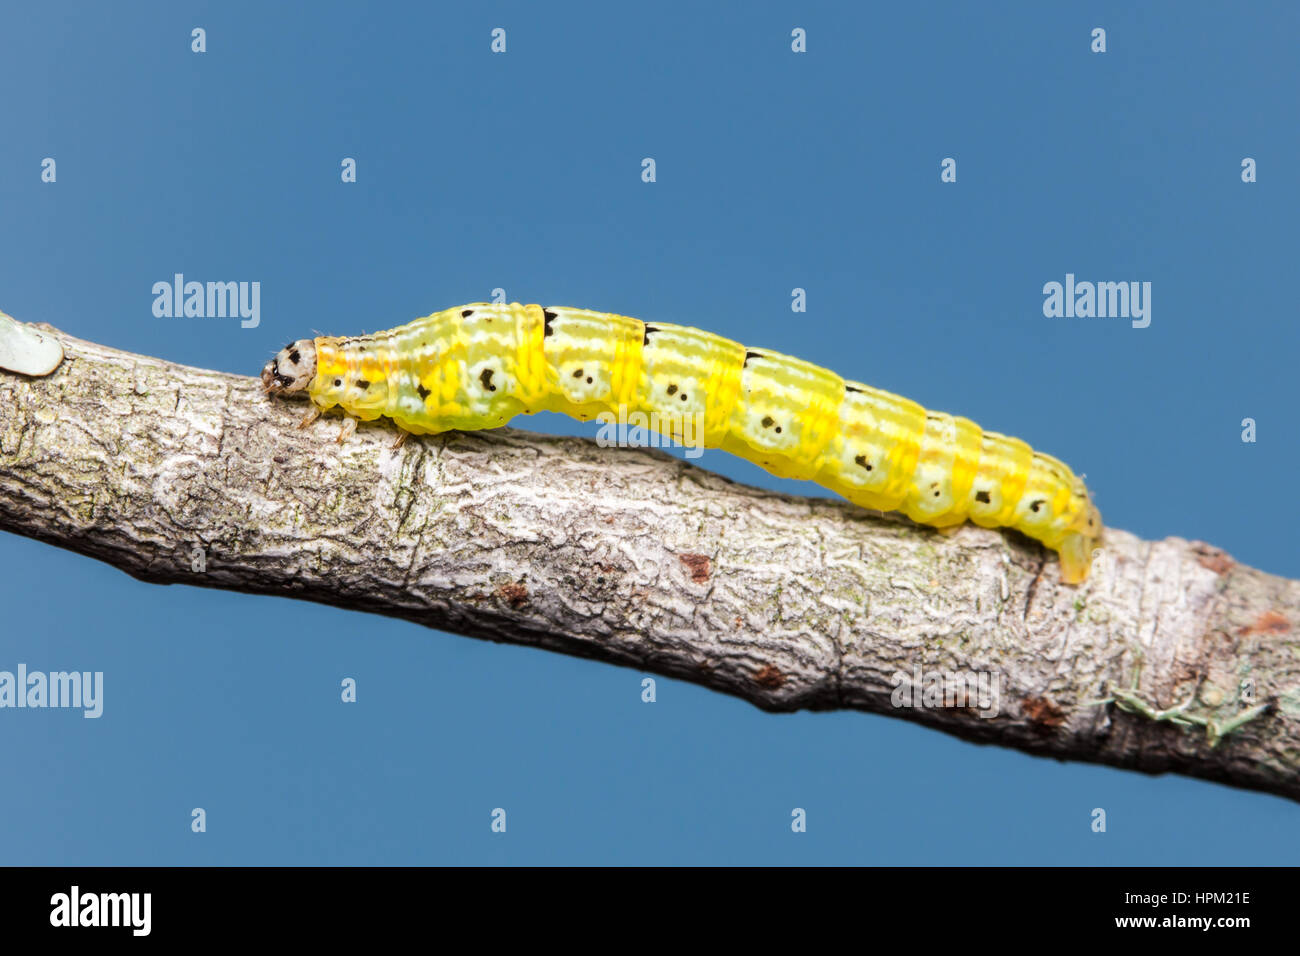 A Geometrid Moth (Episemasia cervinaria) caterpillar (larva) perches on a twig. - Stock Image